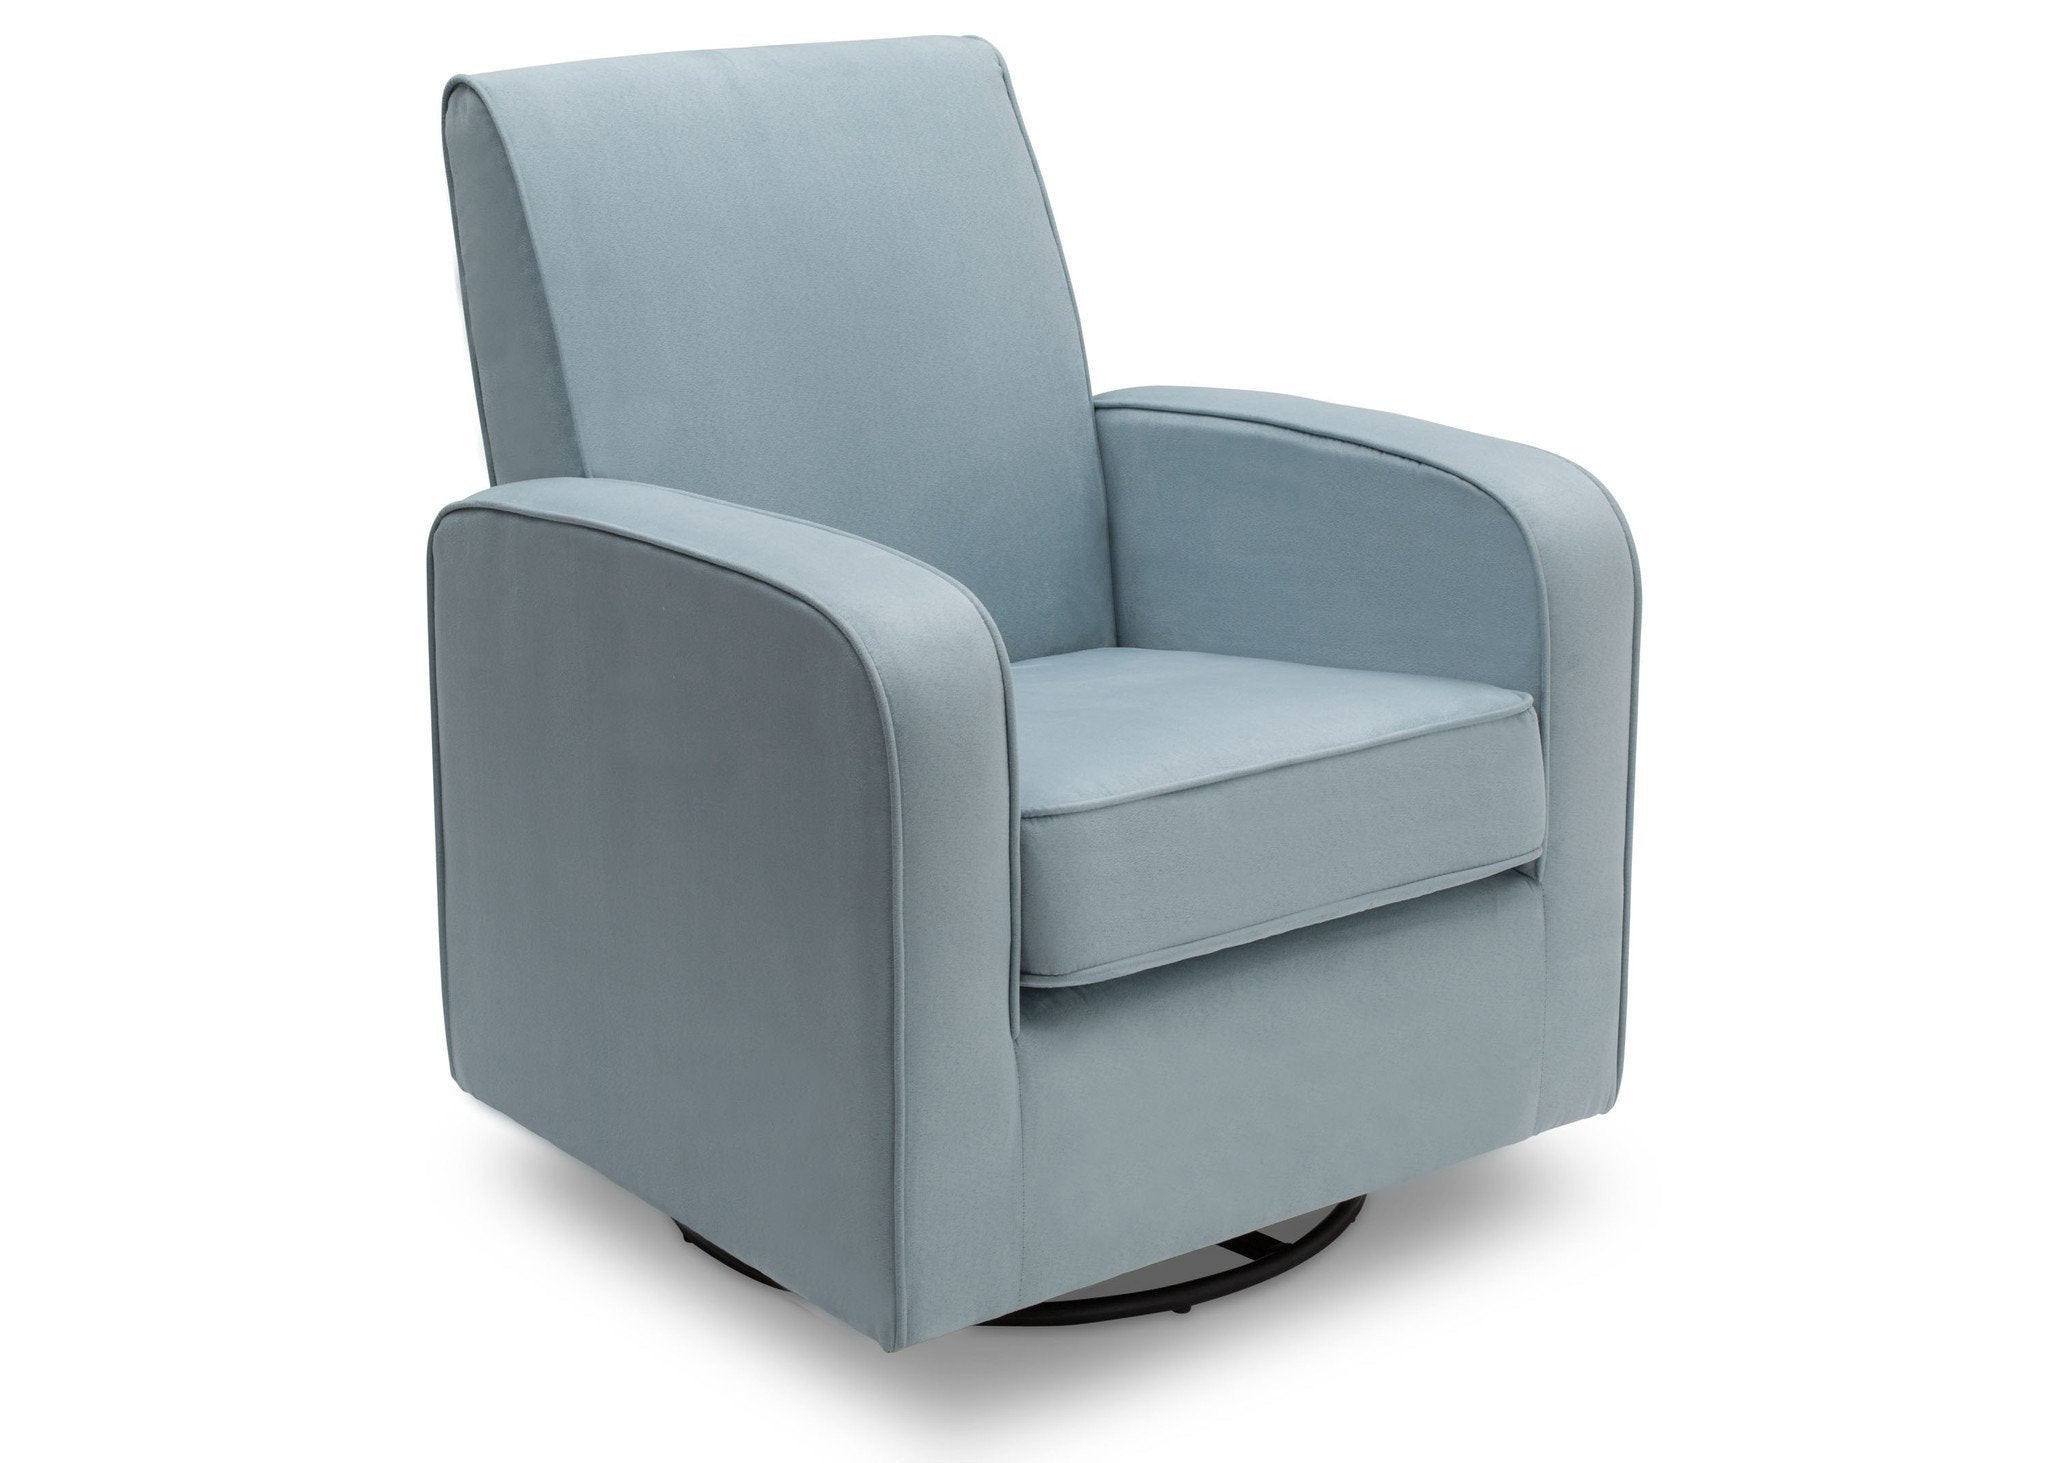 Delta Children Frozen Blue (483) Chloe Glider Right Facing View a3a